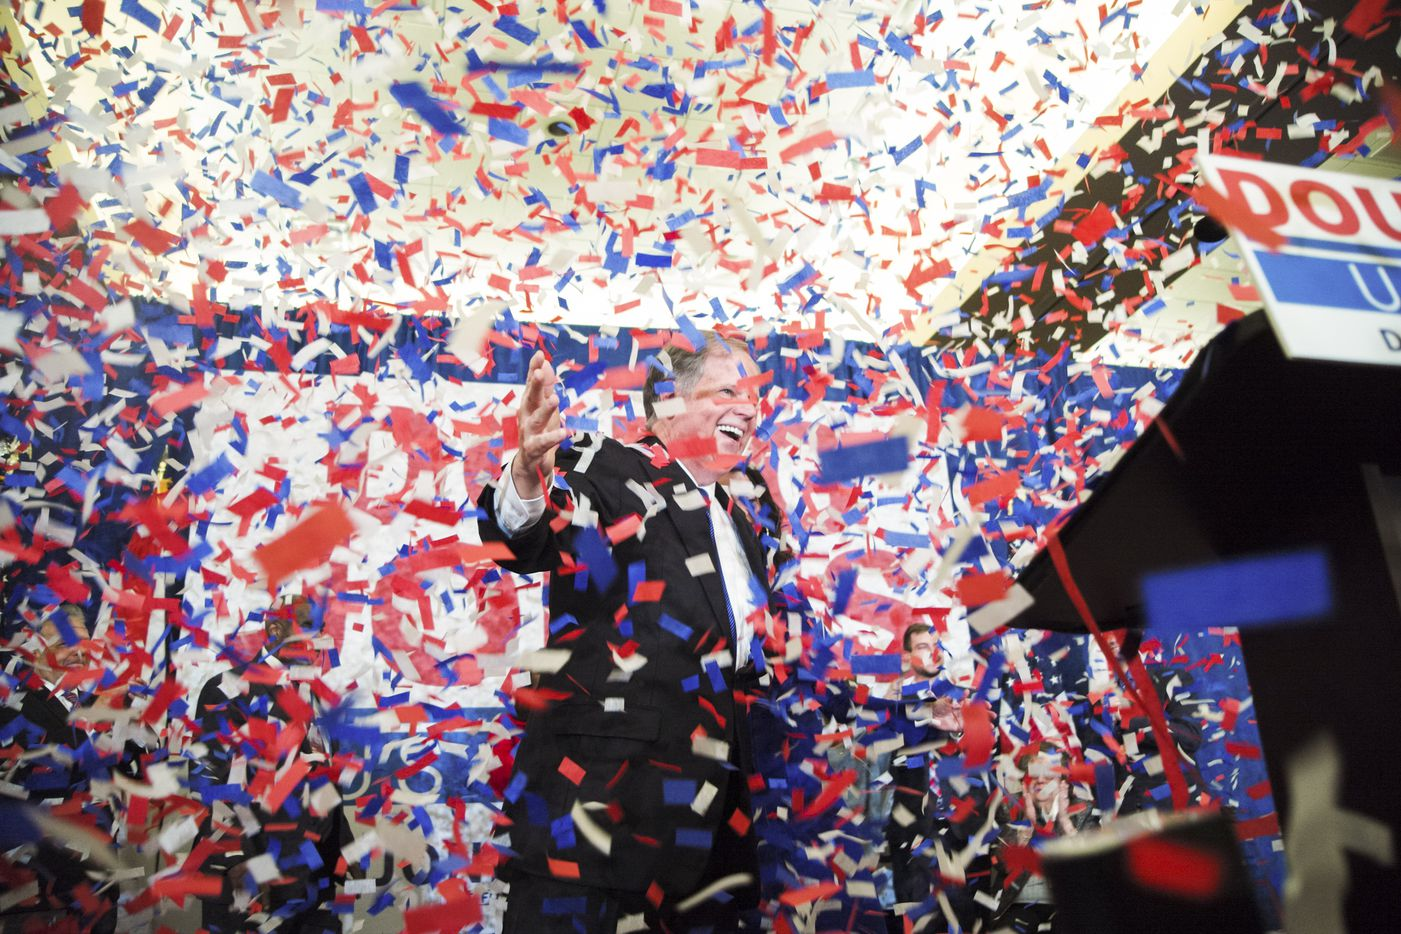 Doug Jones, the Democratic candidate for U.S. Senate, celebrates his presumed victory during his watch party in Birmingham, Ala., Dec. 12, 2017. Jones won the special election on Tuesday to fill the United States Senate seat vacated by Jeff Sessions, now the attorney general, according to The Associated Press. (Bob Miller/The New York Times)